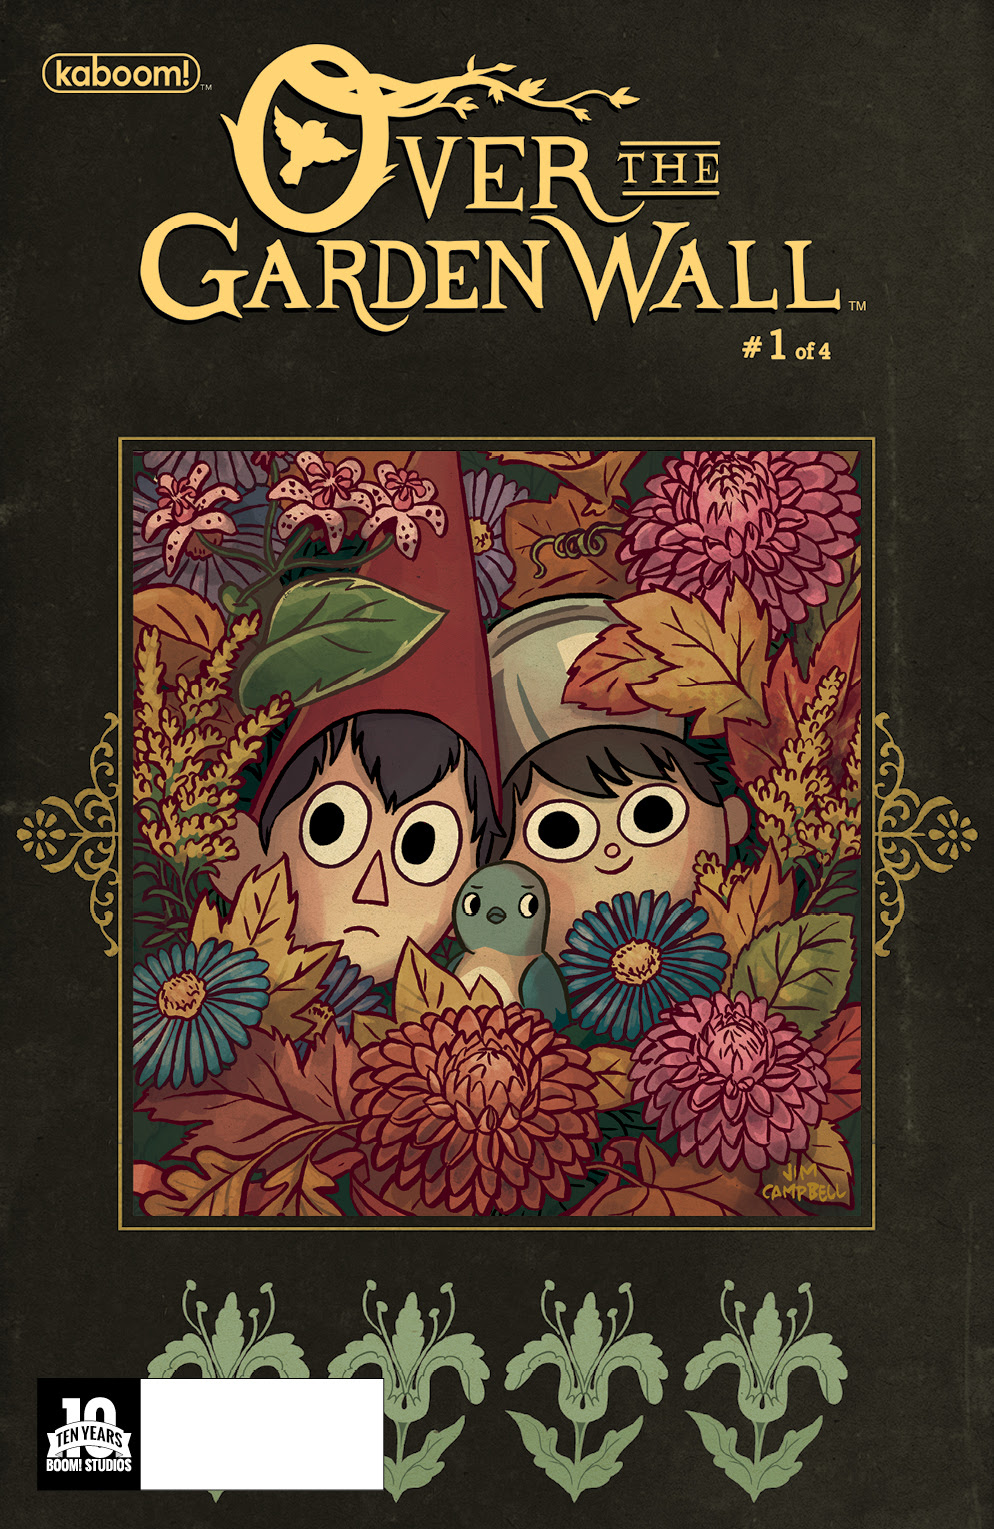 KaBOOM! Giving Fans What They Want: Over The Garden Wall\'s Limited ...